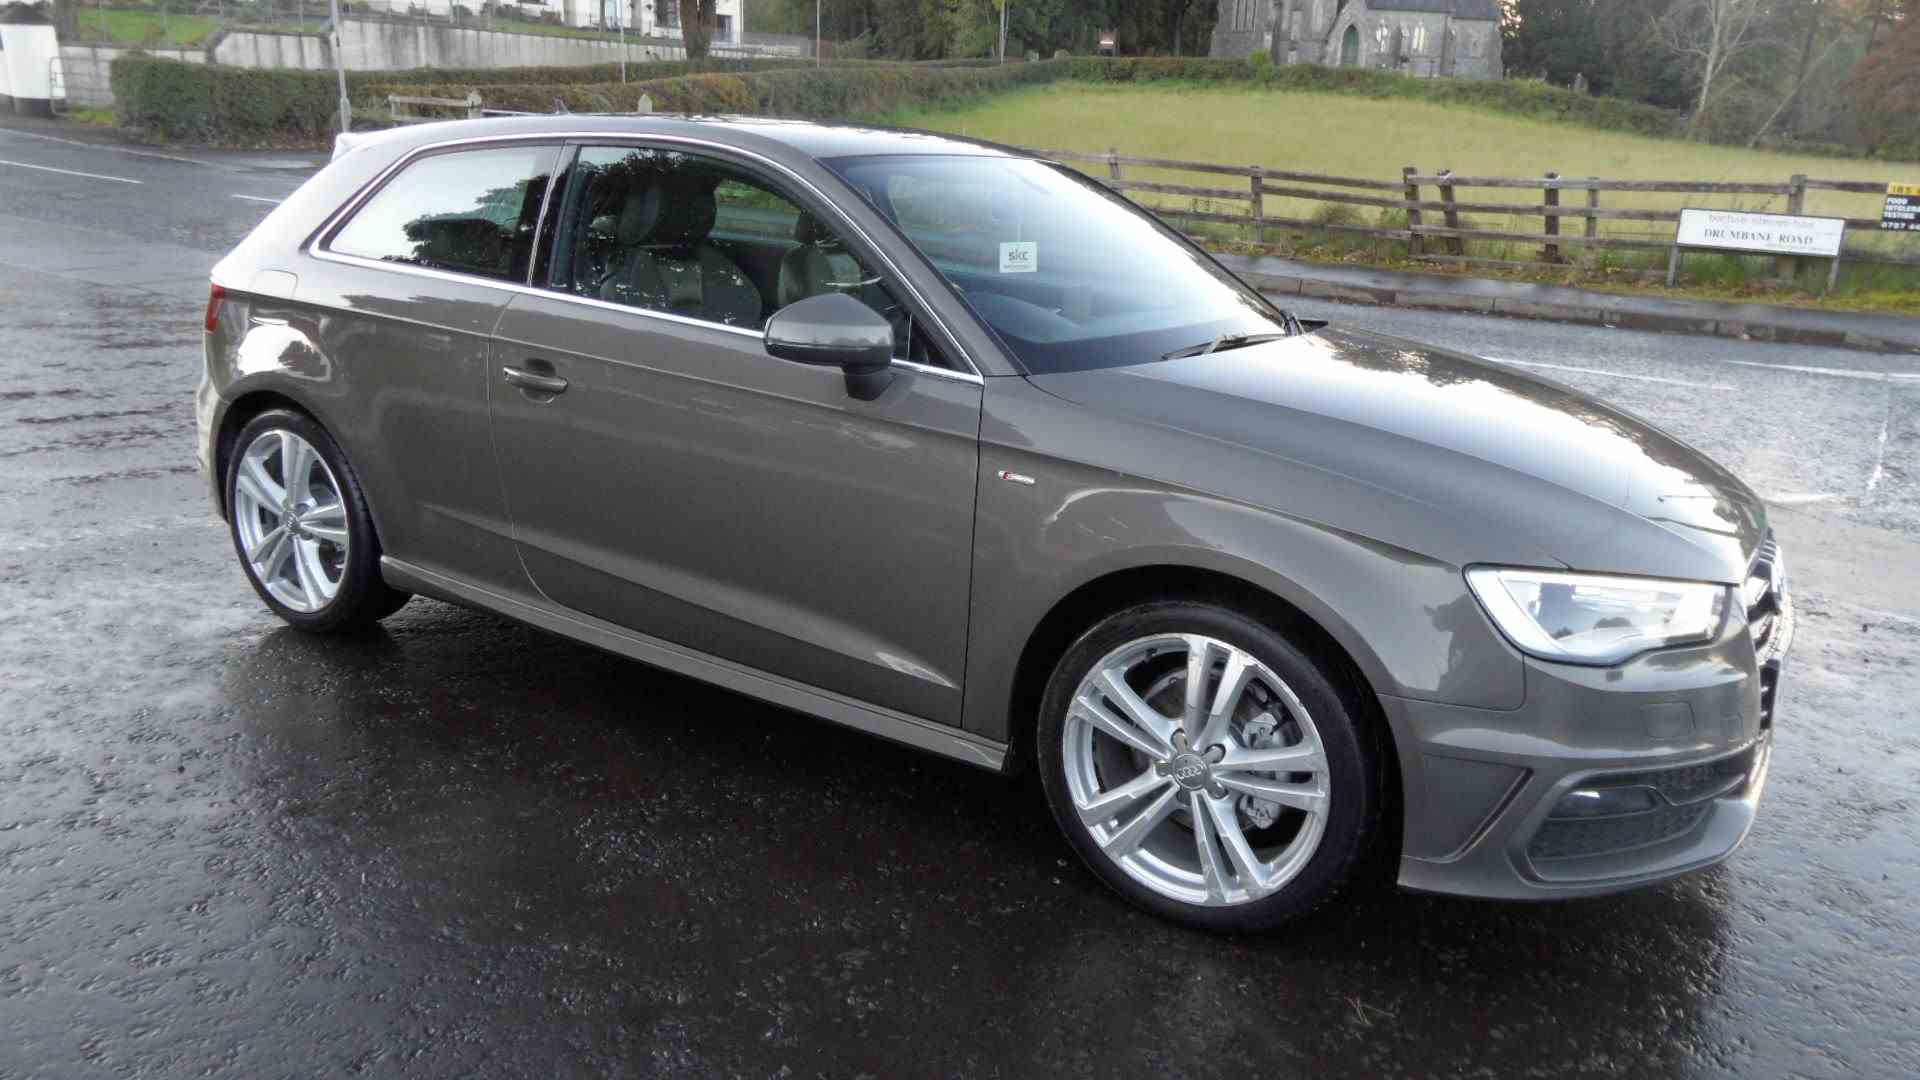 Sought after A3 SLine Auto 3door, getting wheel refurb this week, call Sean on 07970936458 or 02879401371 for more information and to arrange a test drive. Keen finance available with Northridge, Santander Consumer Finance or Motonovo